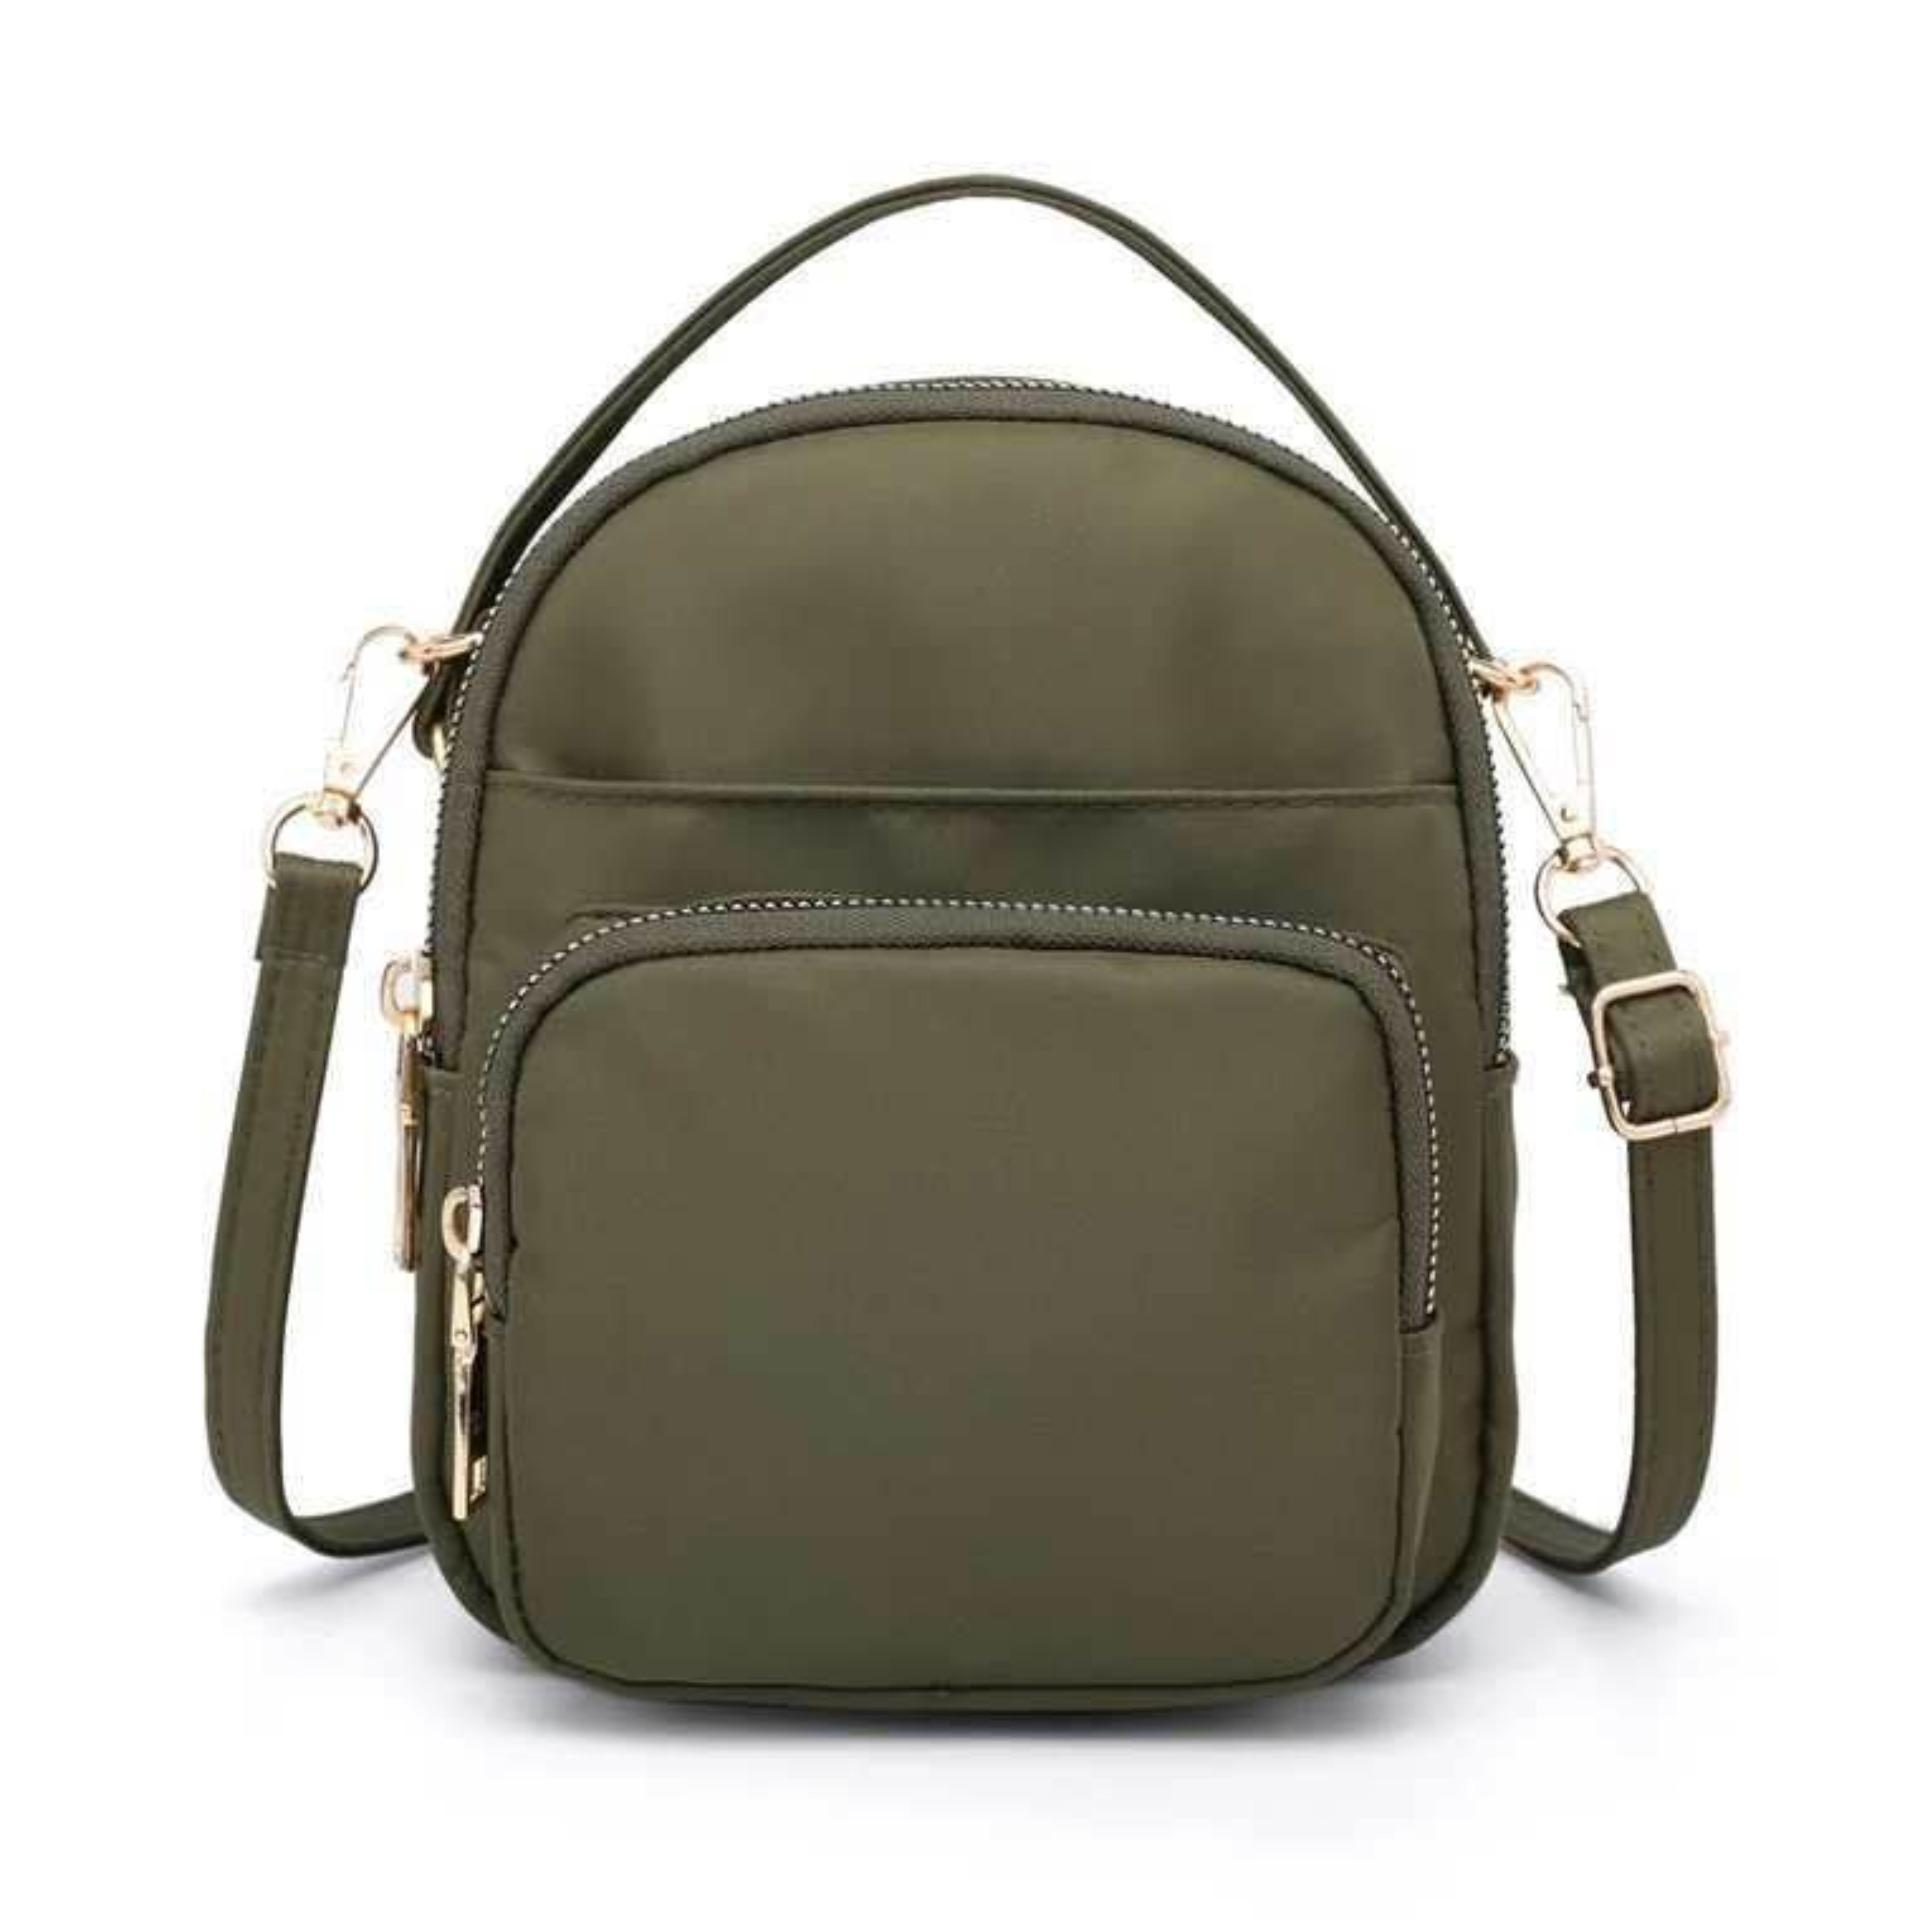 f2862012d30 Bags for Women for sale - Womens Bags online brands, prices   reviews in  Philippines   Lazada.com.ph